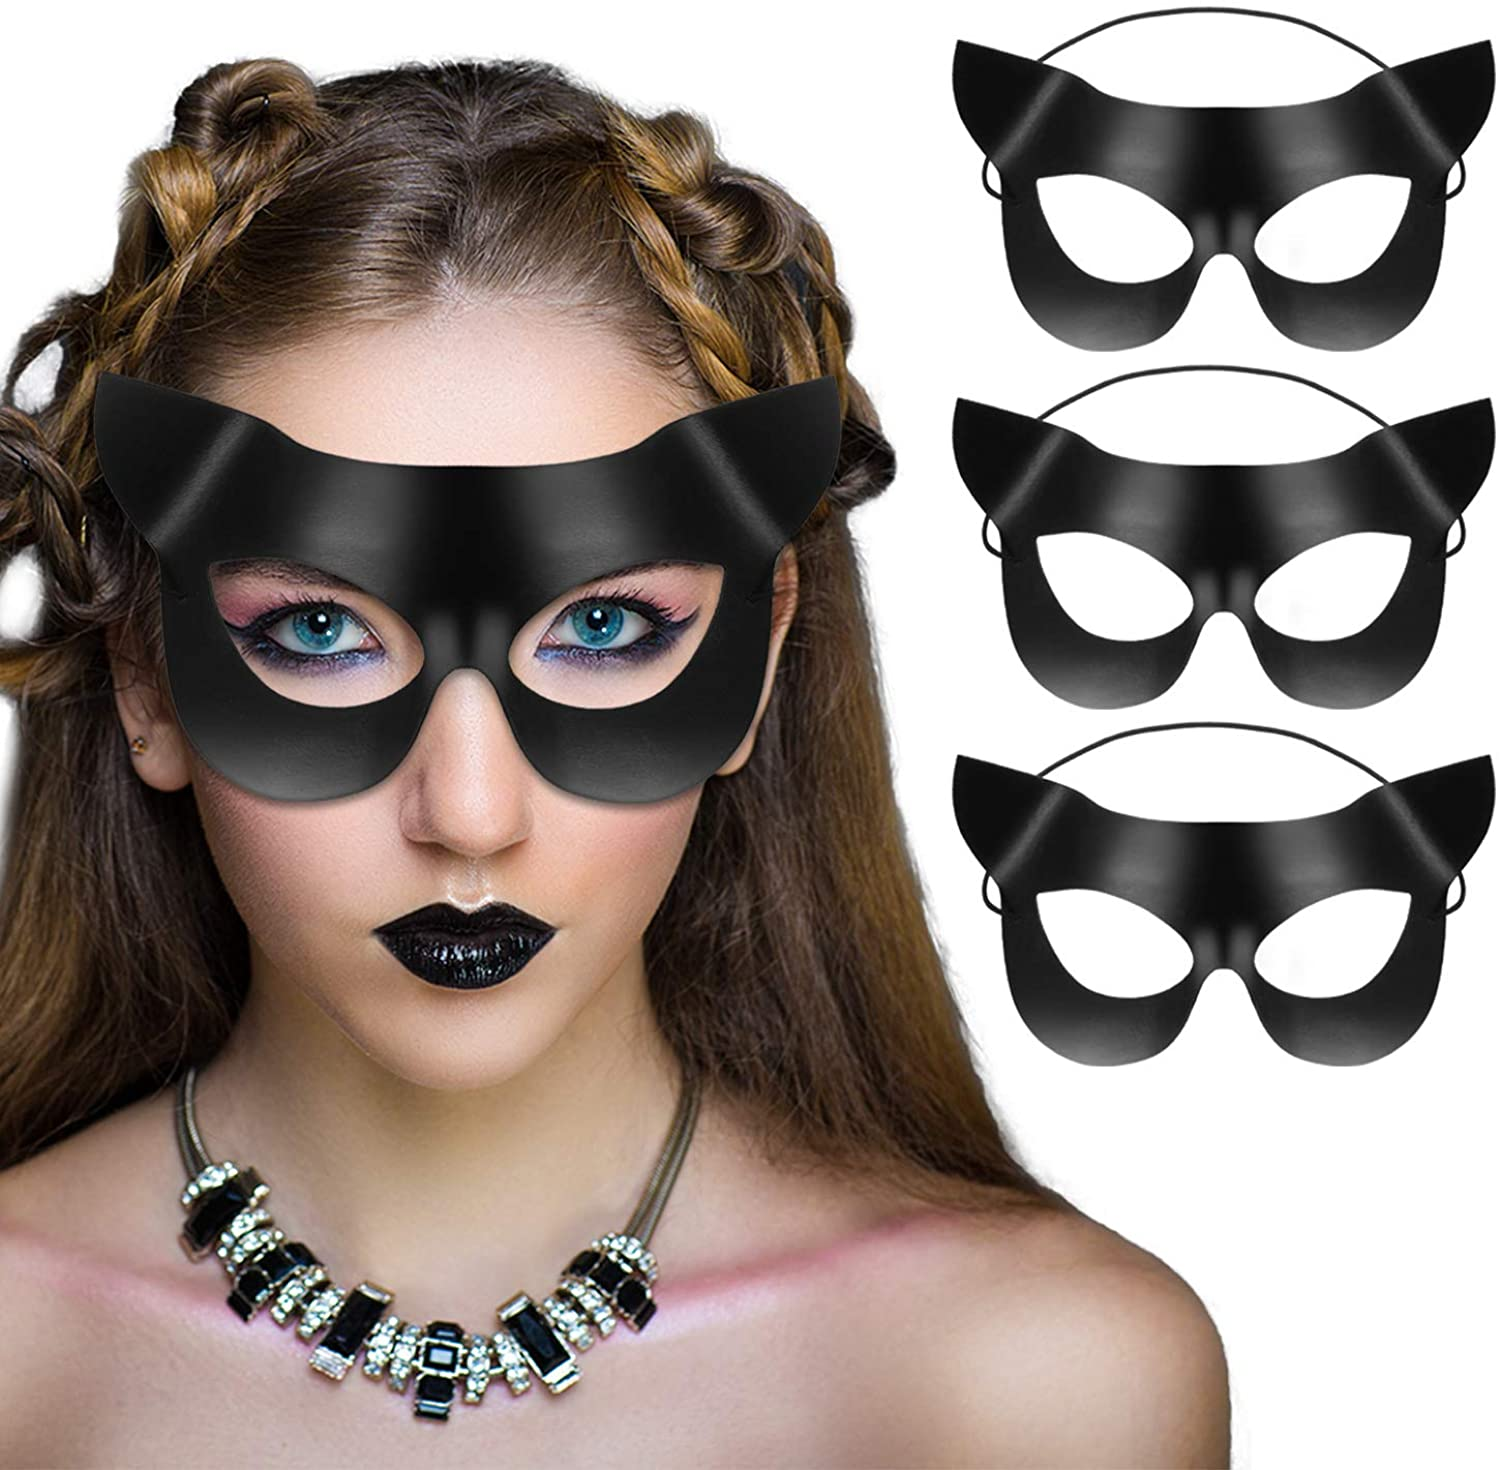 Halloween Women's Cat Masks Half Face Cat Mask Vinyl Masquerade Mask for Cosplay Kitty Fancy Dress Party, 3 Pieces Black